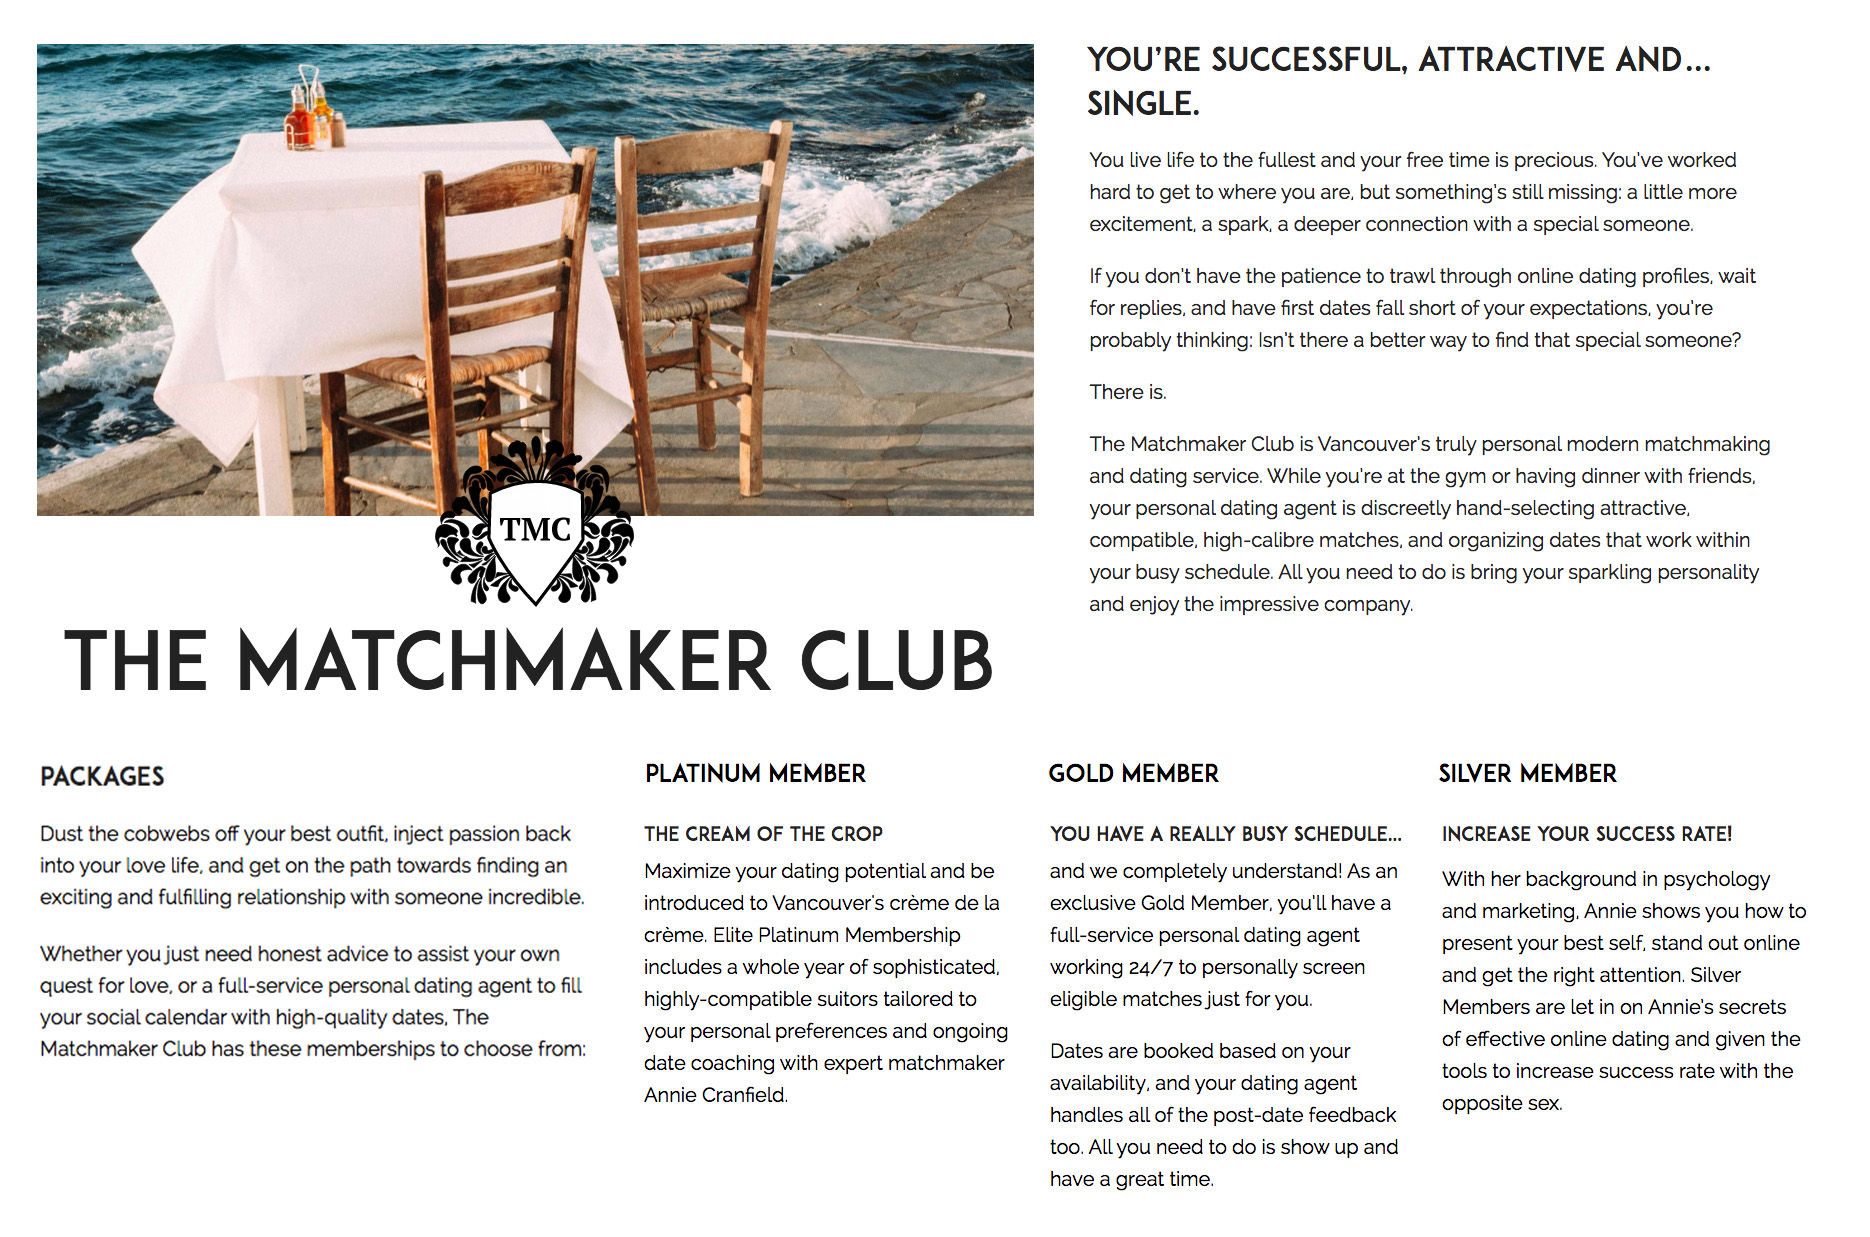 The Matchmaker Club Website